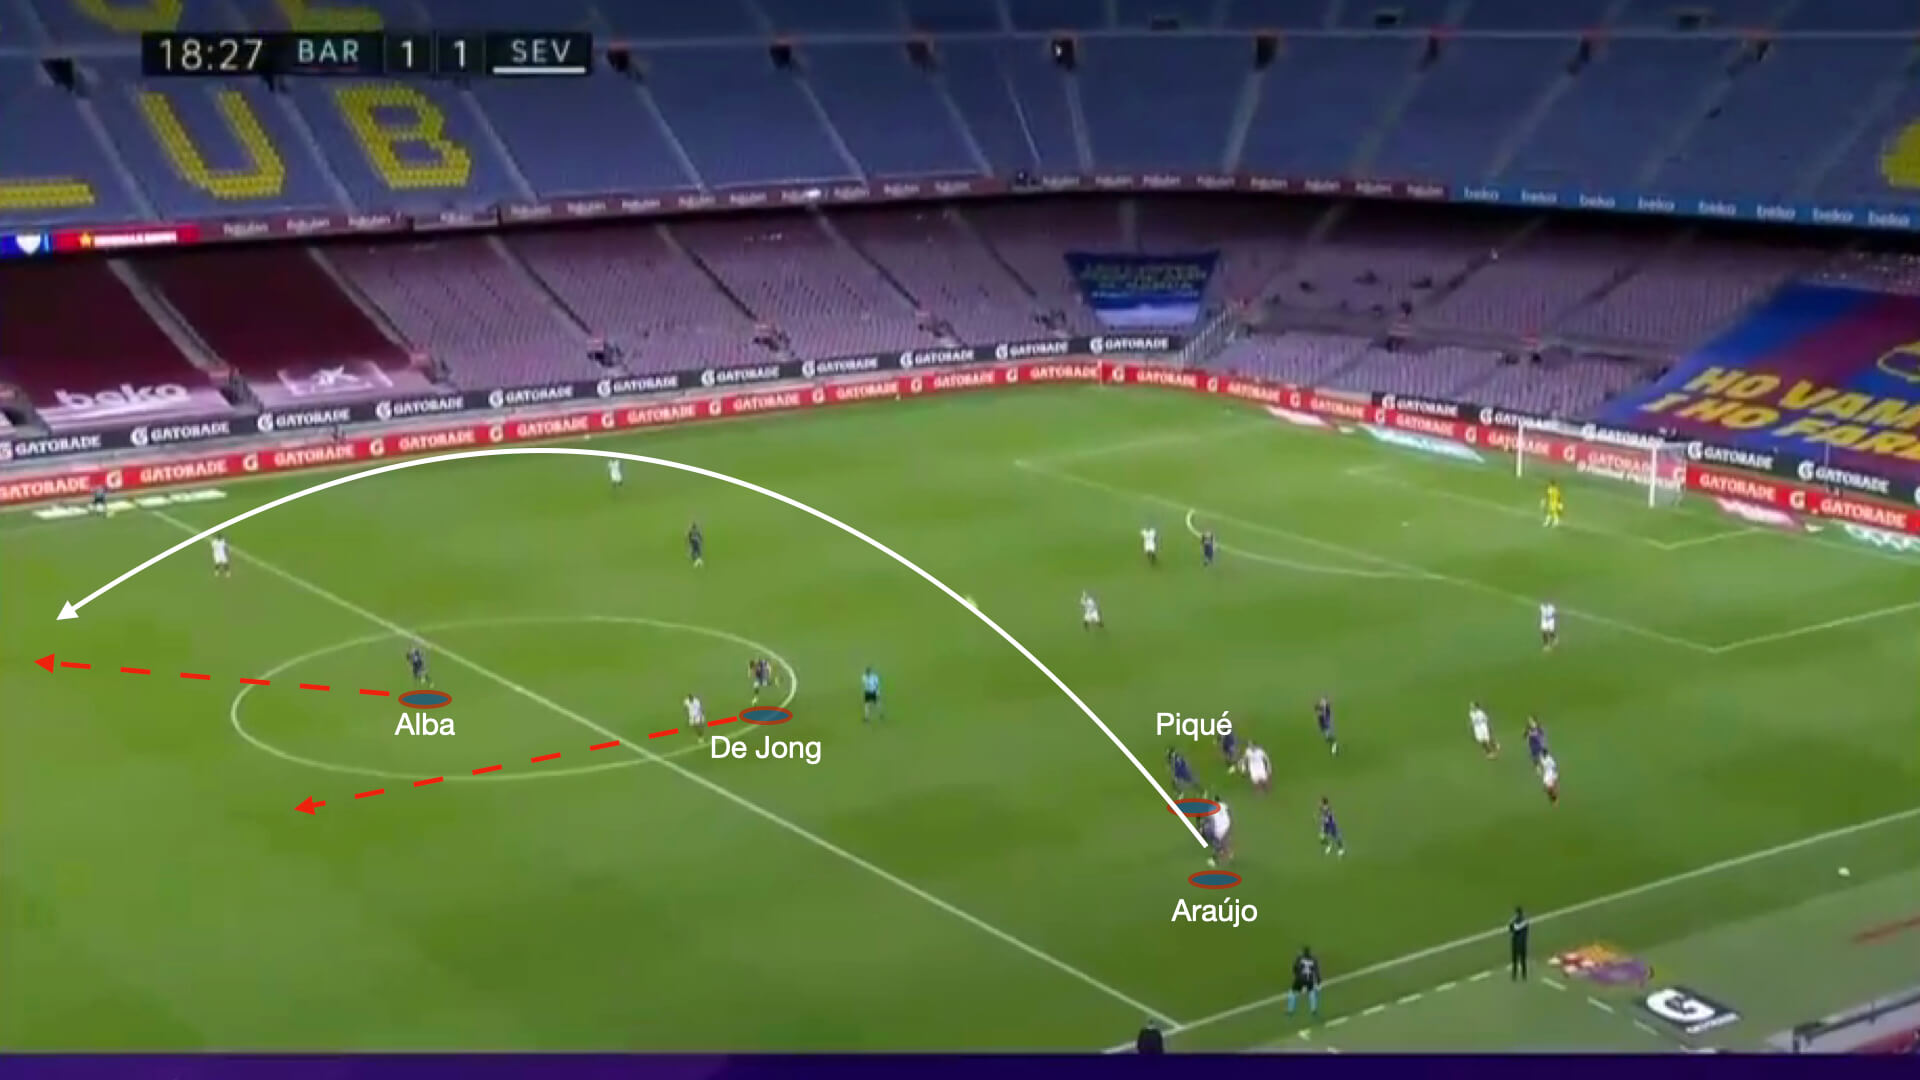 Barcelona vs Sevilla 2020/21 - tactical analysis tactics